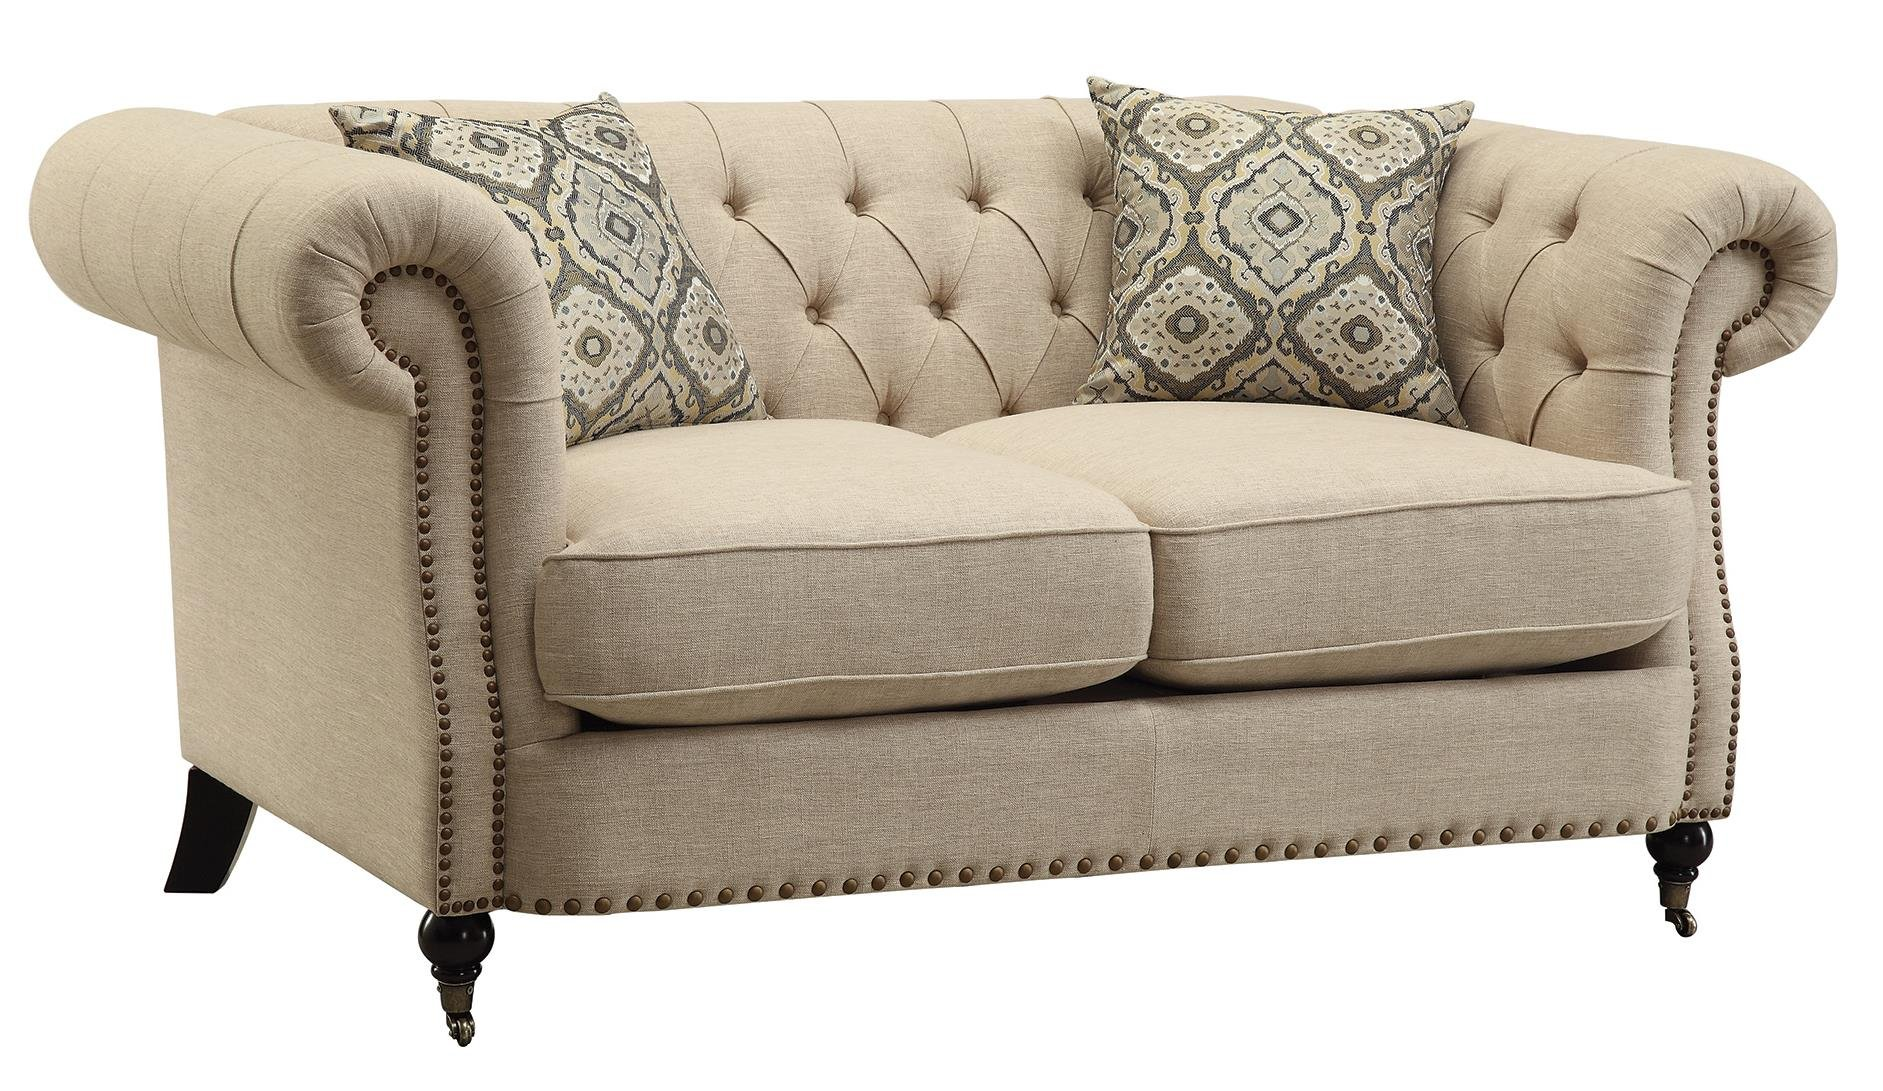 Coaster Home Furnishings 505822 Oatmeal Trivellato Collection Loveseat